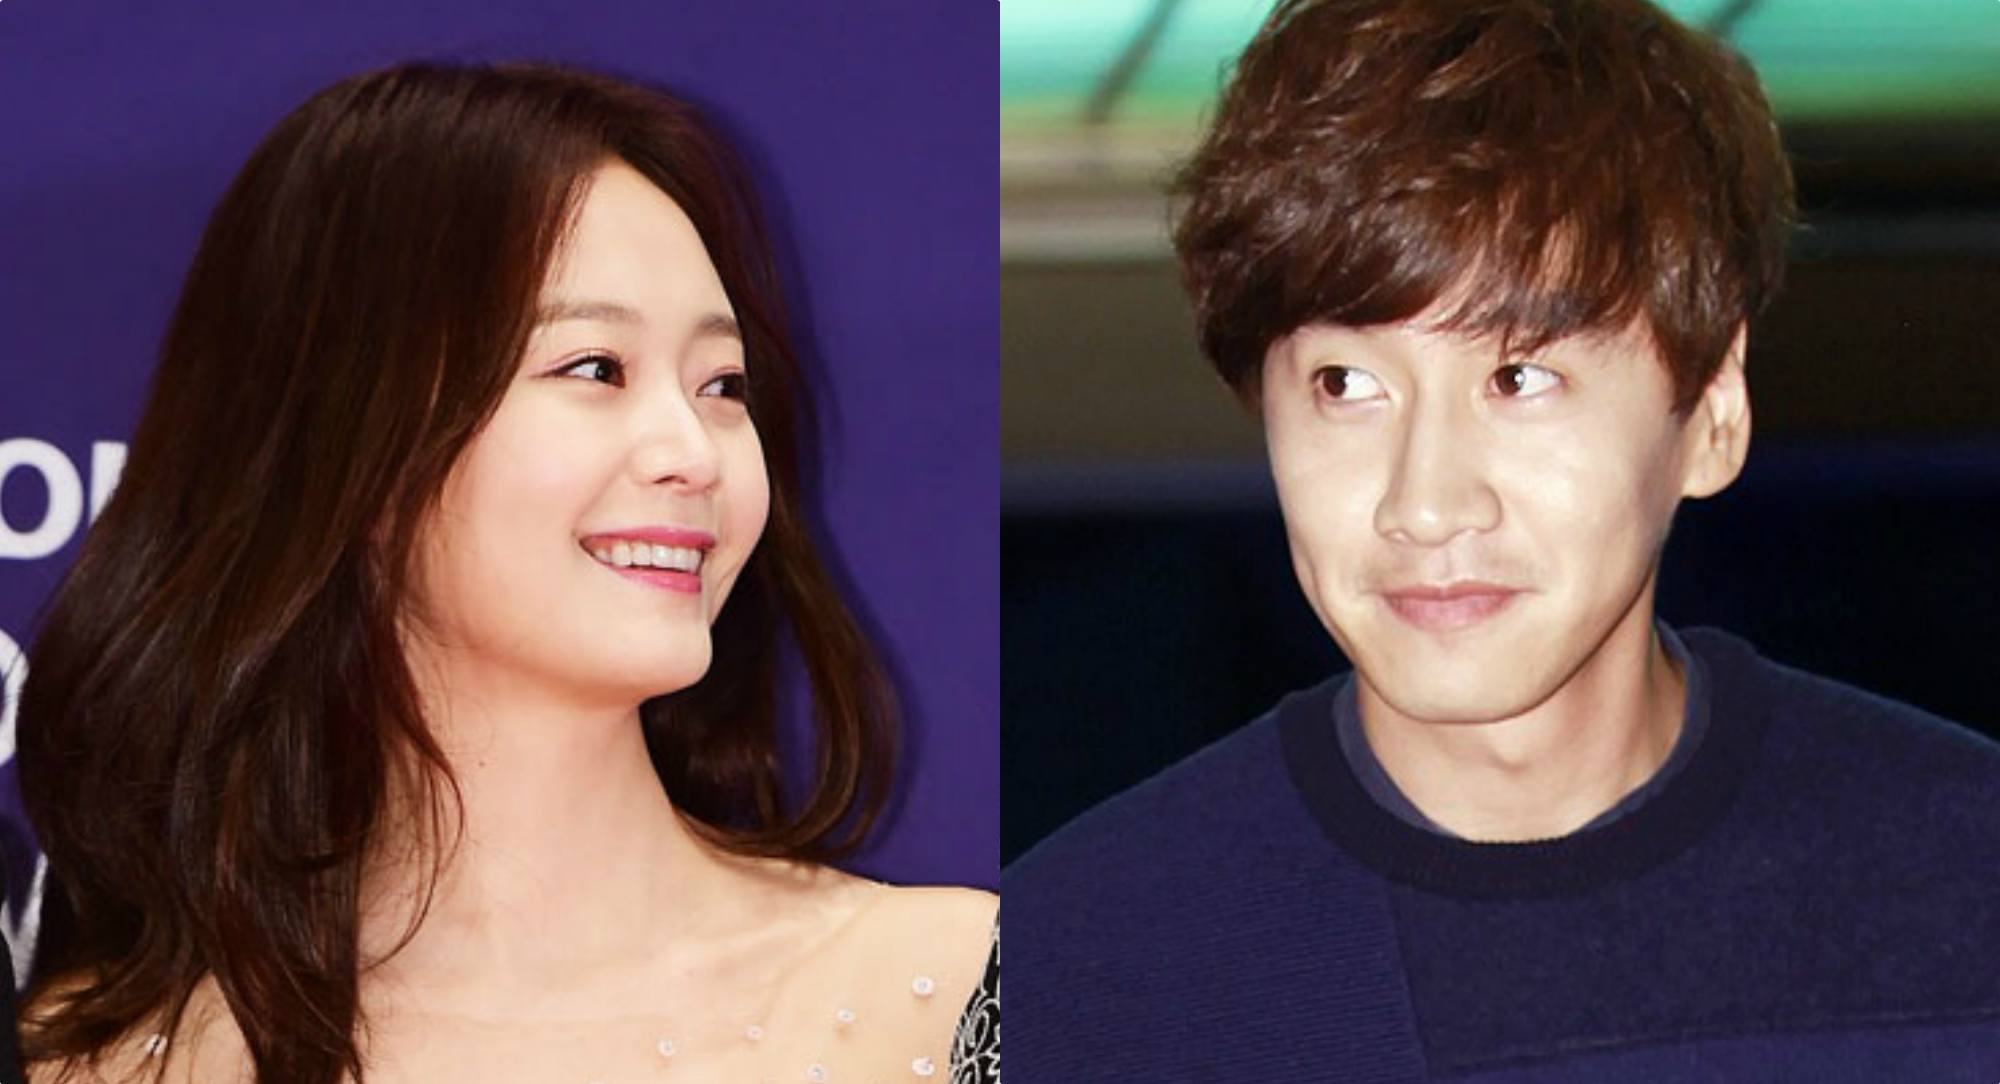 Lee Kwang Soo reveals he slept over at Jeon So Mins House while drunk